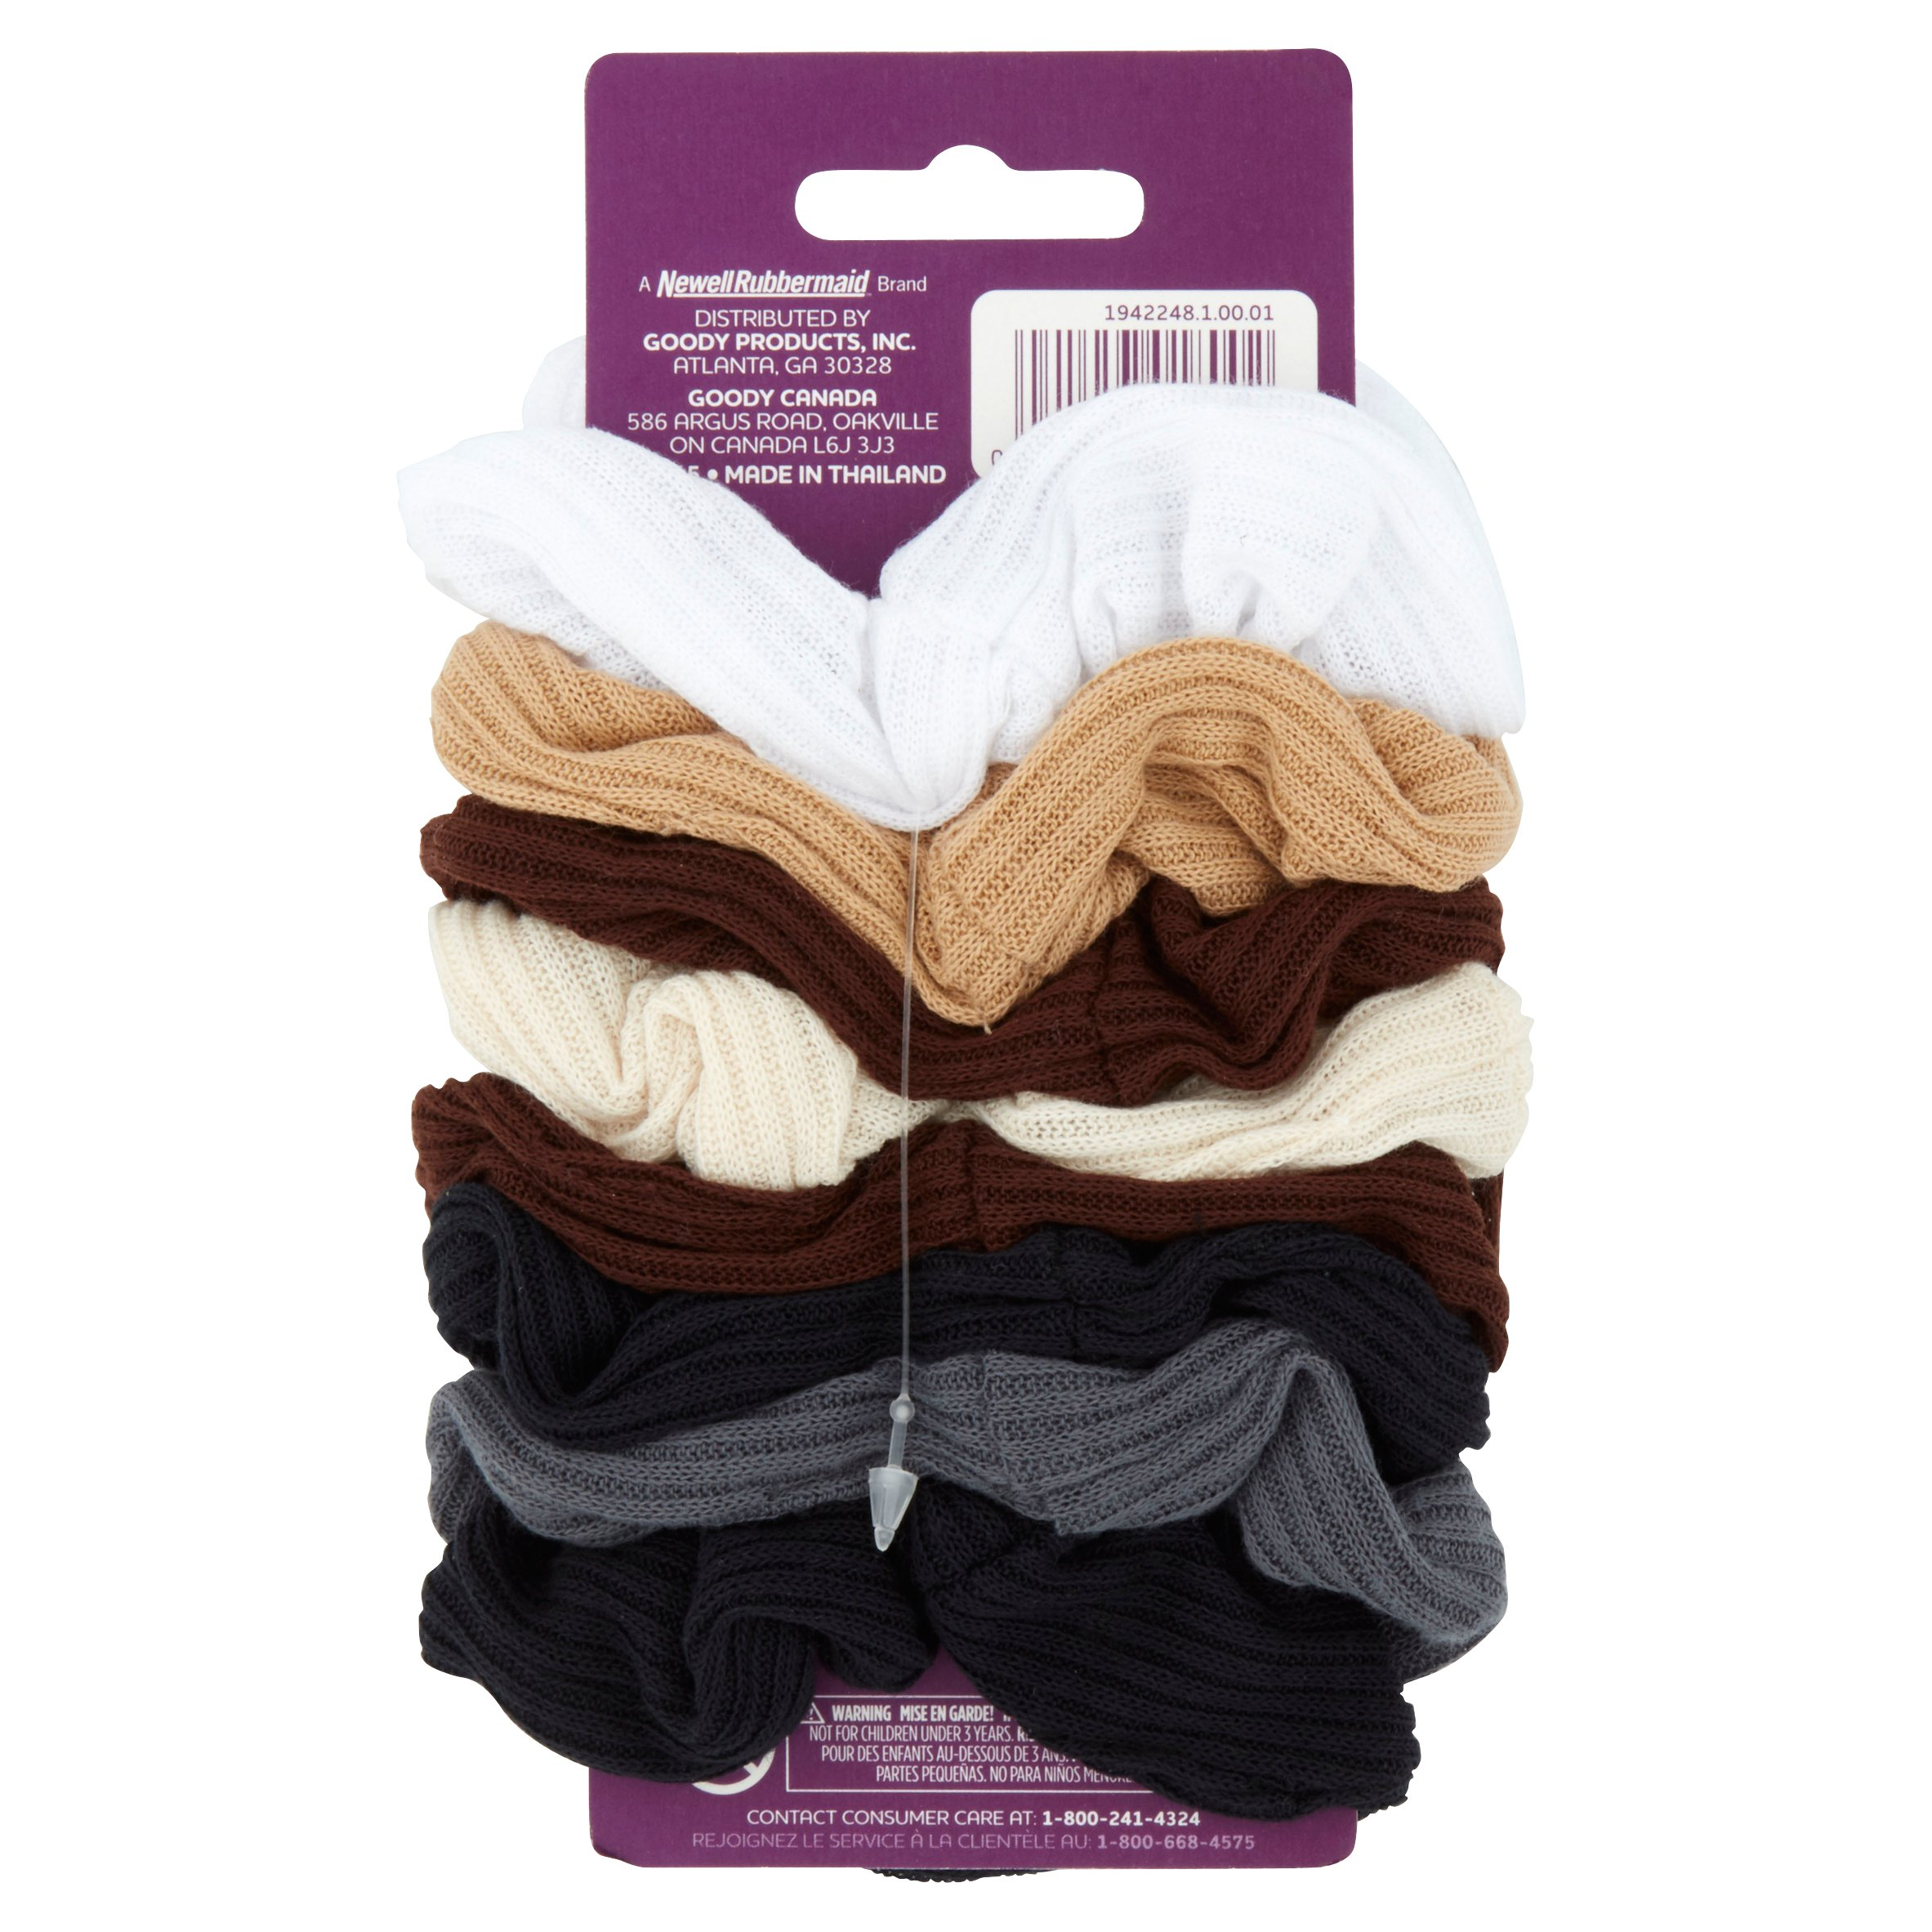 Goody - Goody Ouchless Ribbed Hair Scrunchies 87da762be62